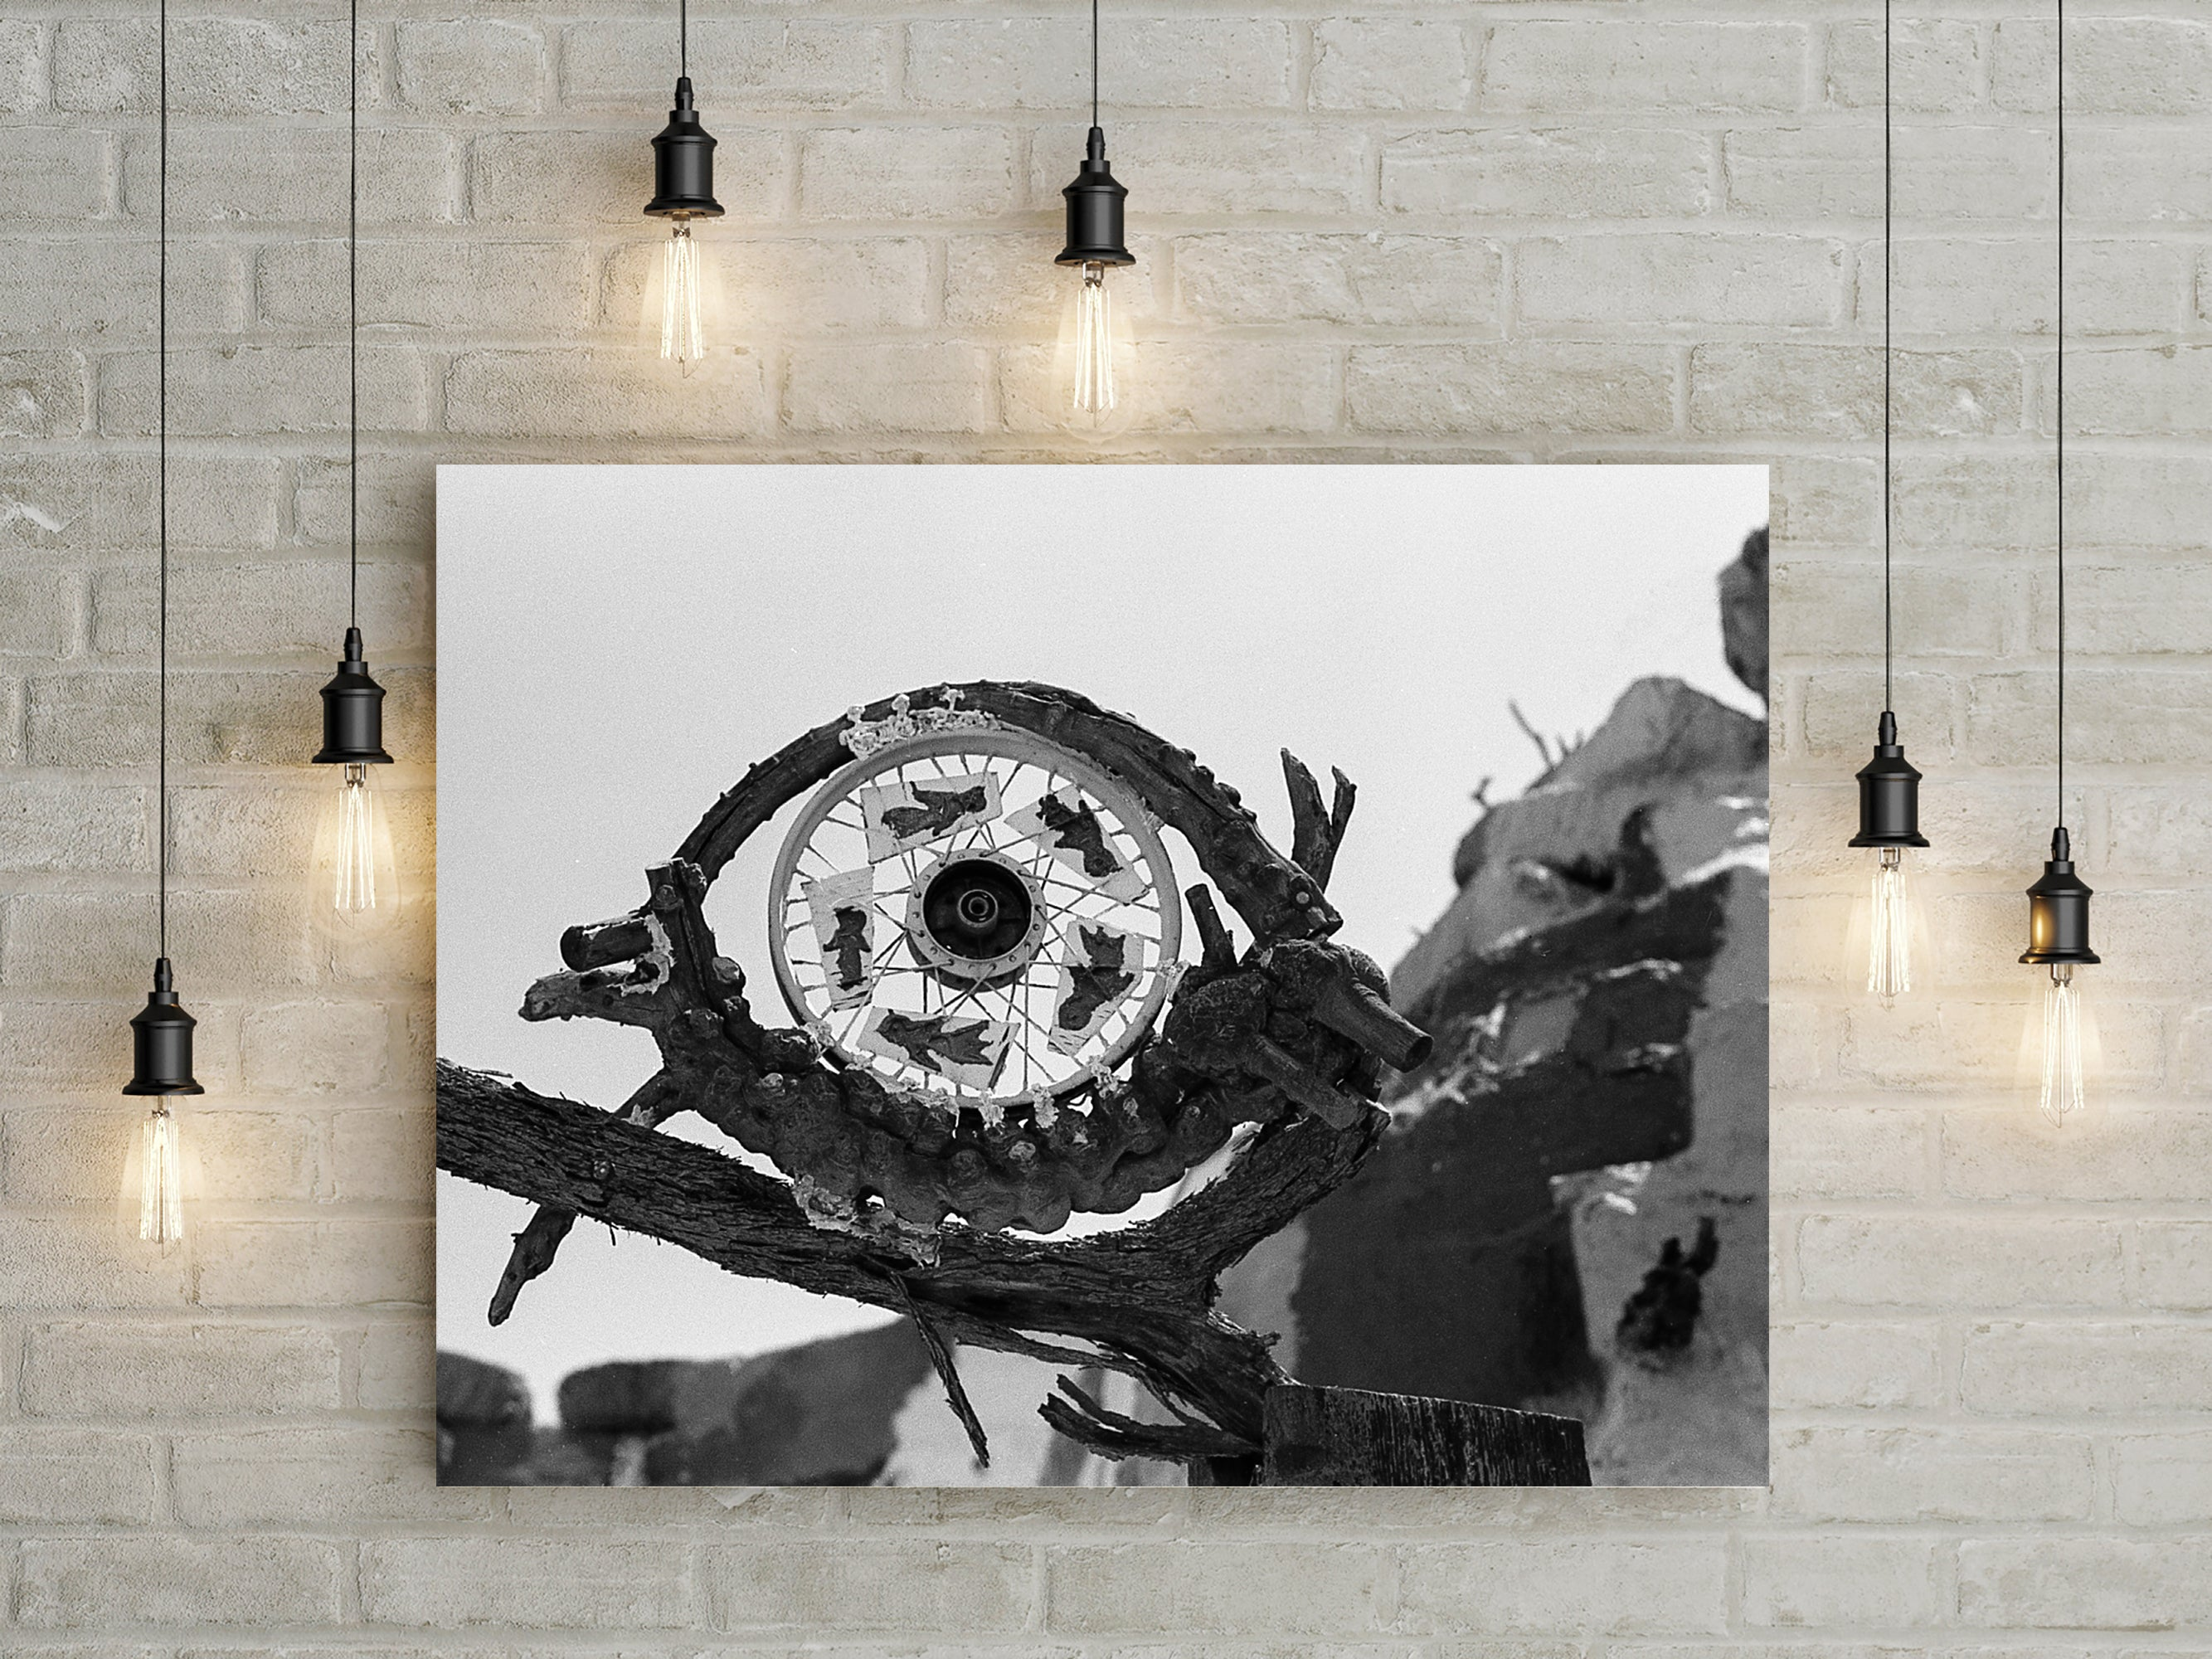 Evil Eye Recycled Scrap Metal Sculpture Art Print